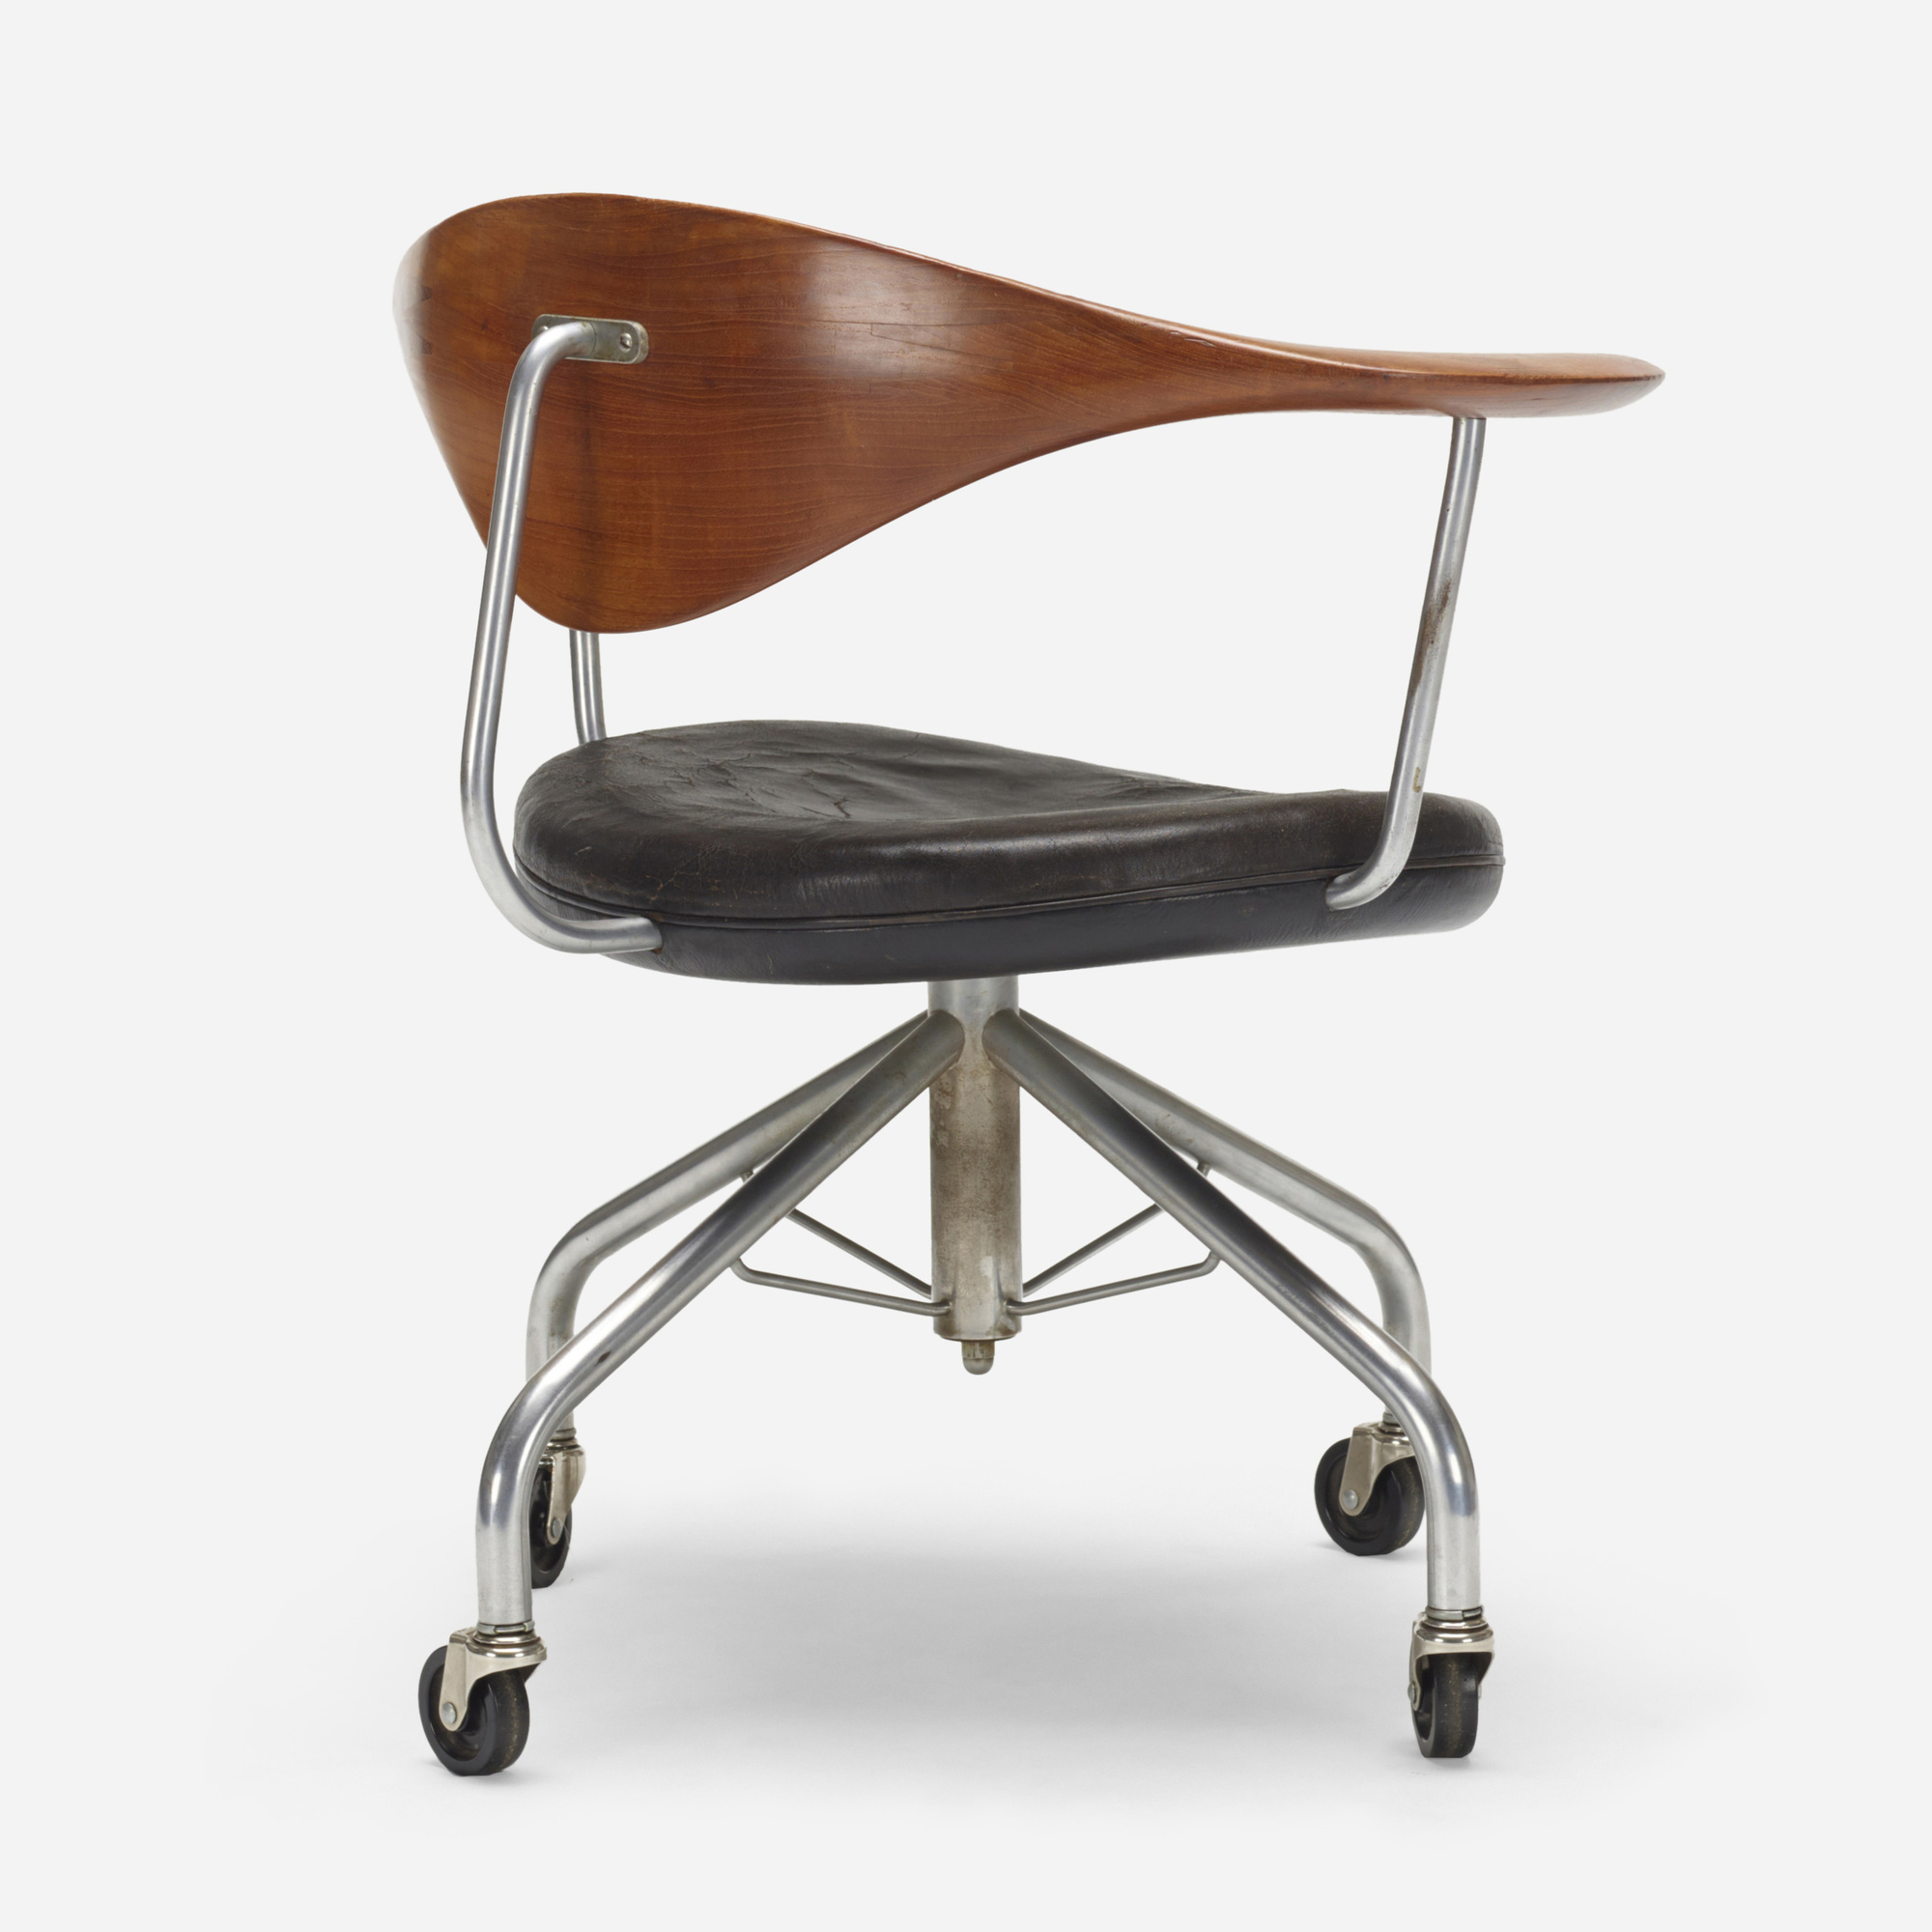 186 Hans J Wegner Swivel Office Chair Important Design 10 December 2019 Auctions Wright Auctions Of Art And Design